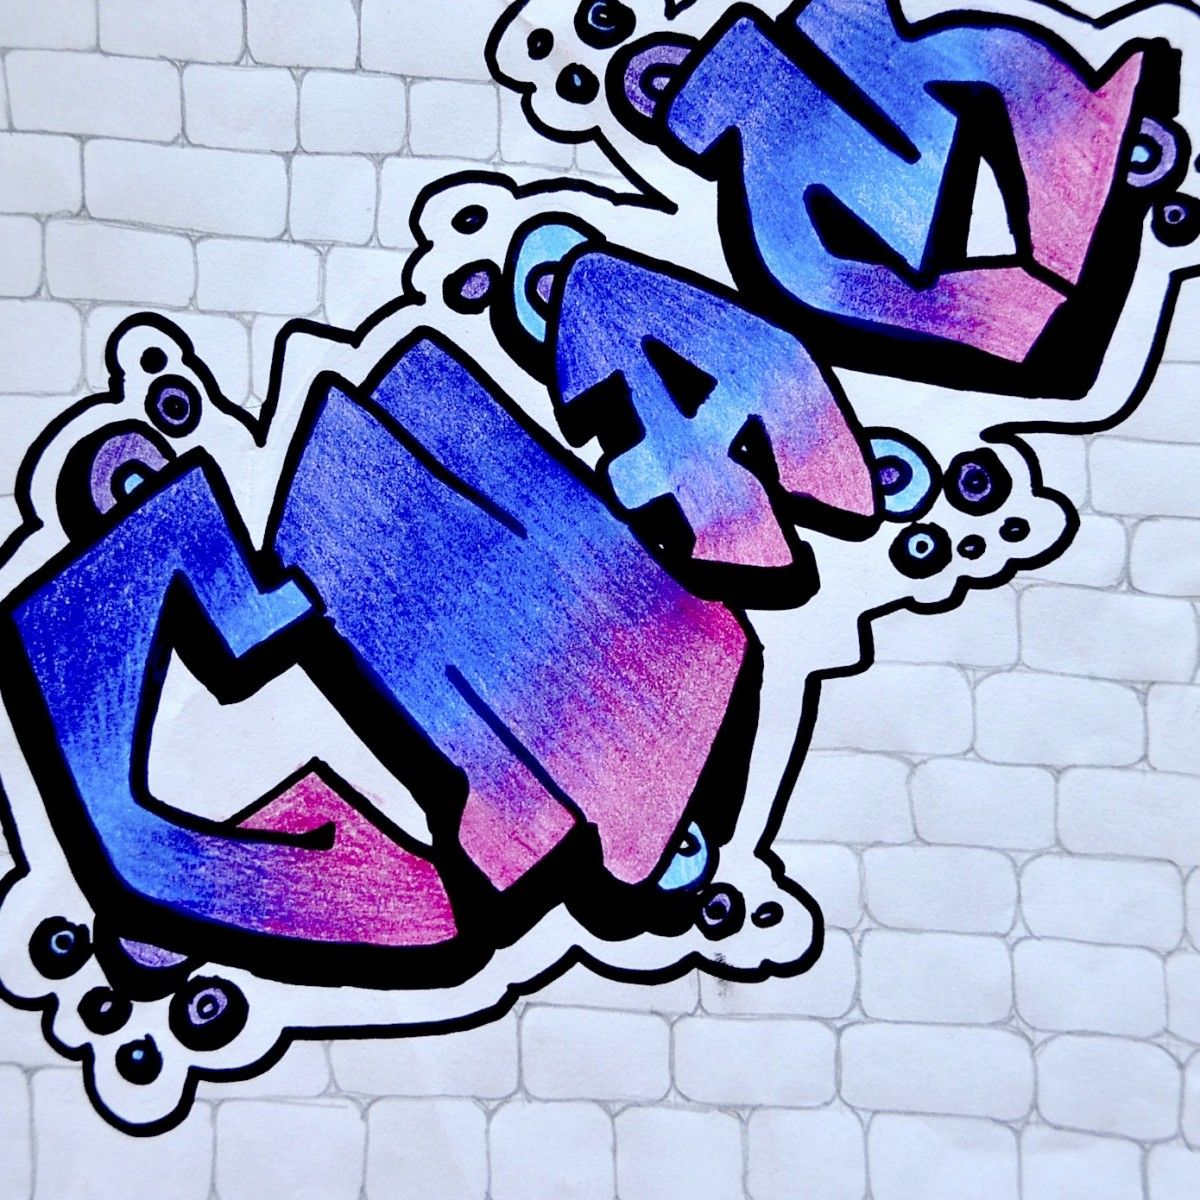 Name In Graffiti Style Graffiti Graffiti Wall Art Graffiti Styles